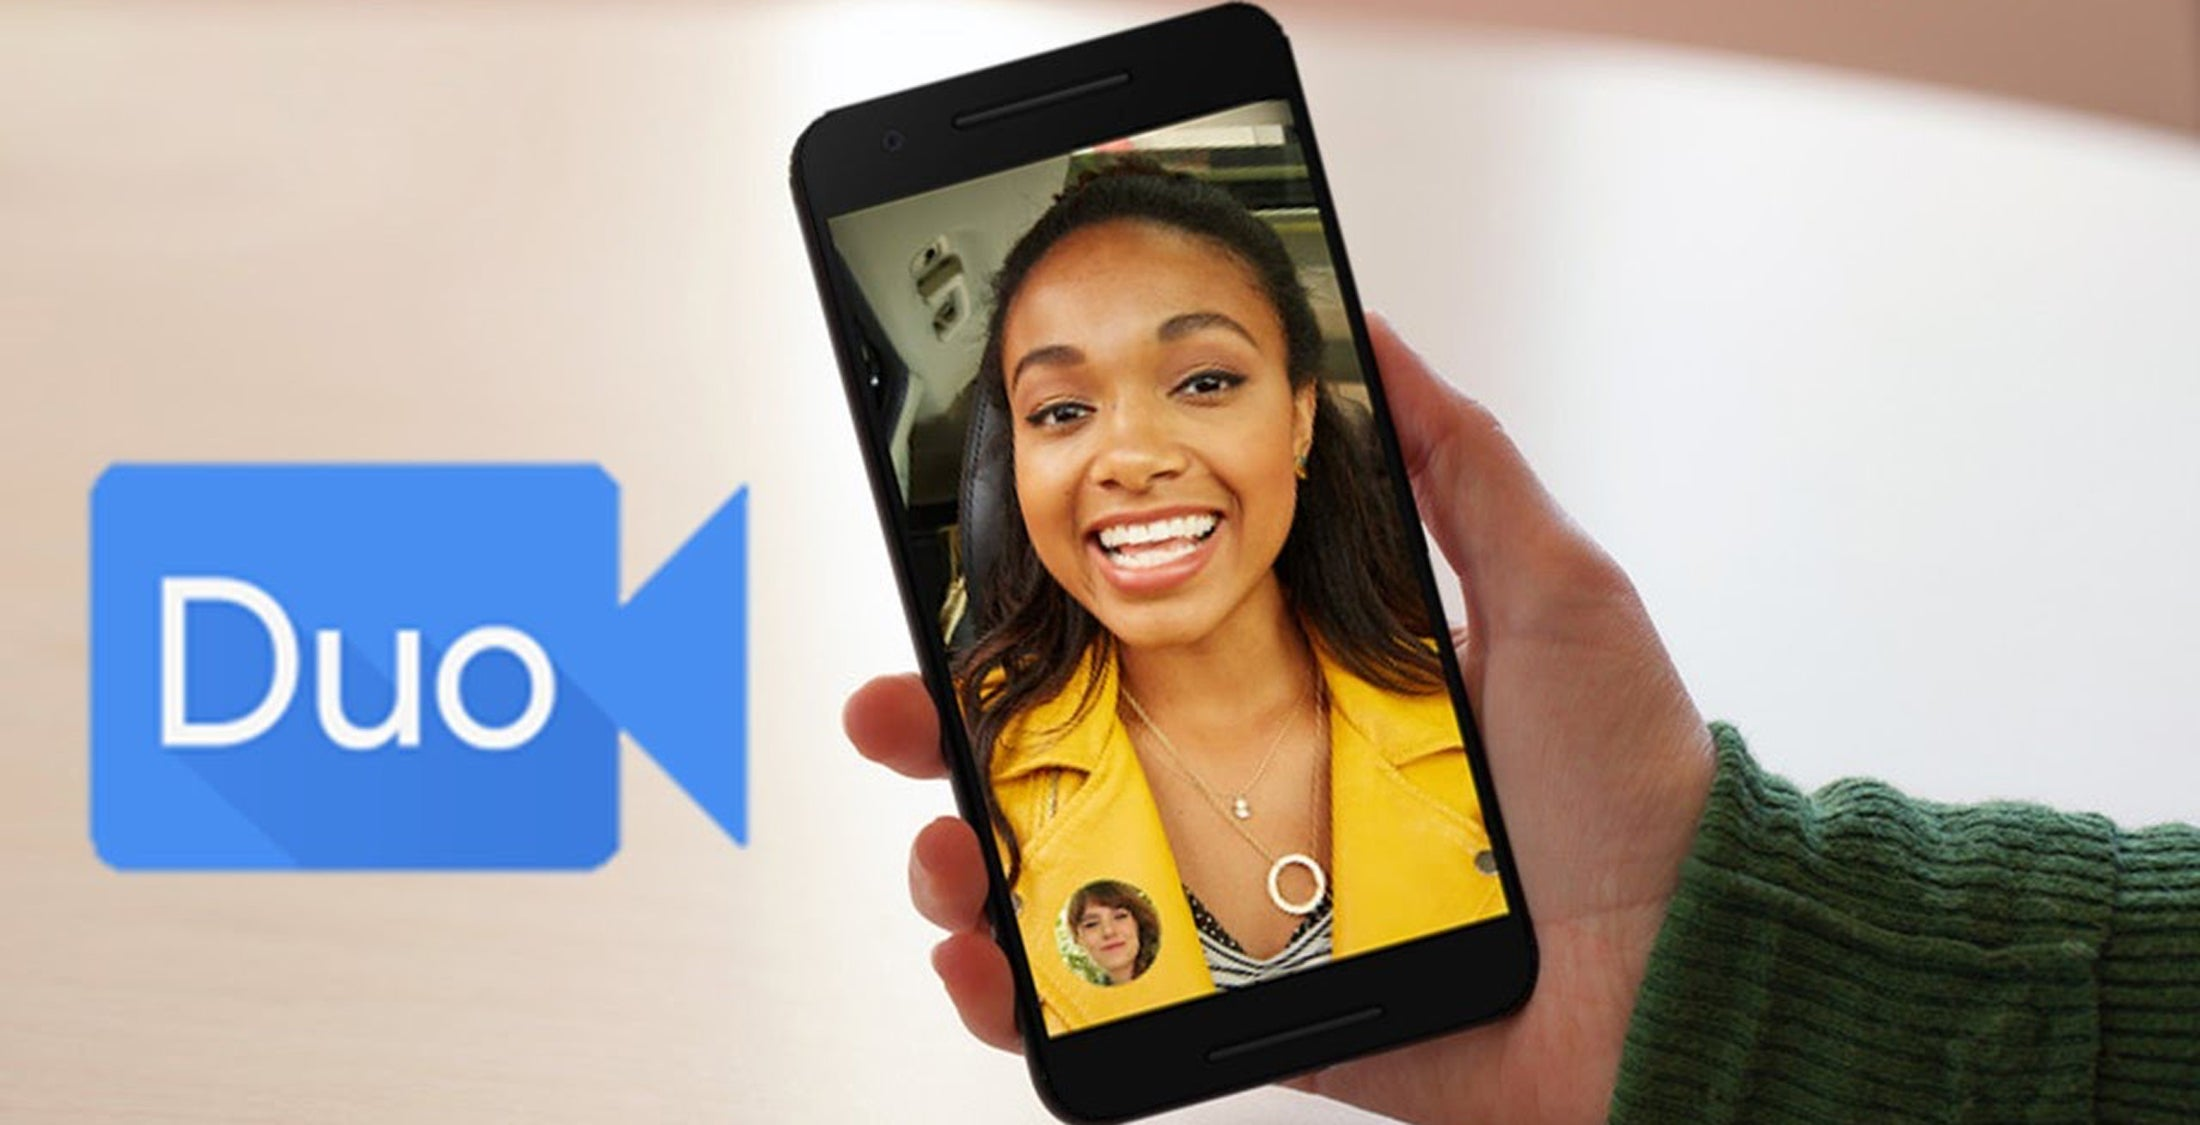 Google is finally getting serious about video calling on Android | Trusted Reviews